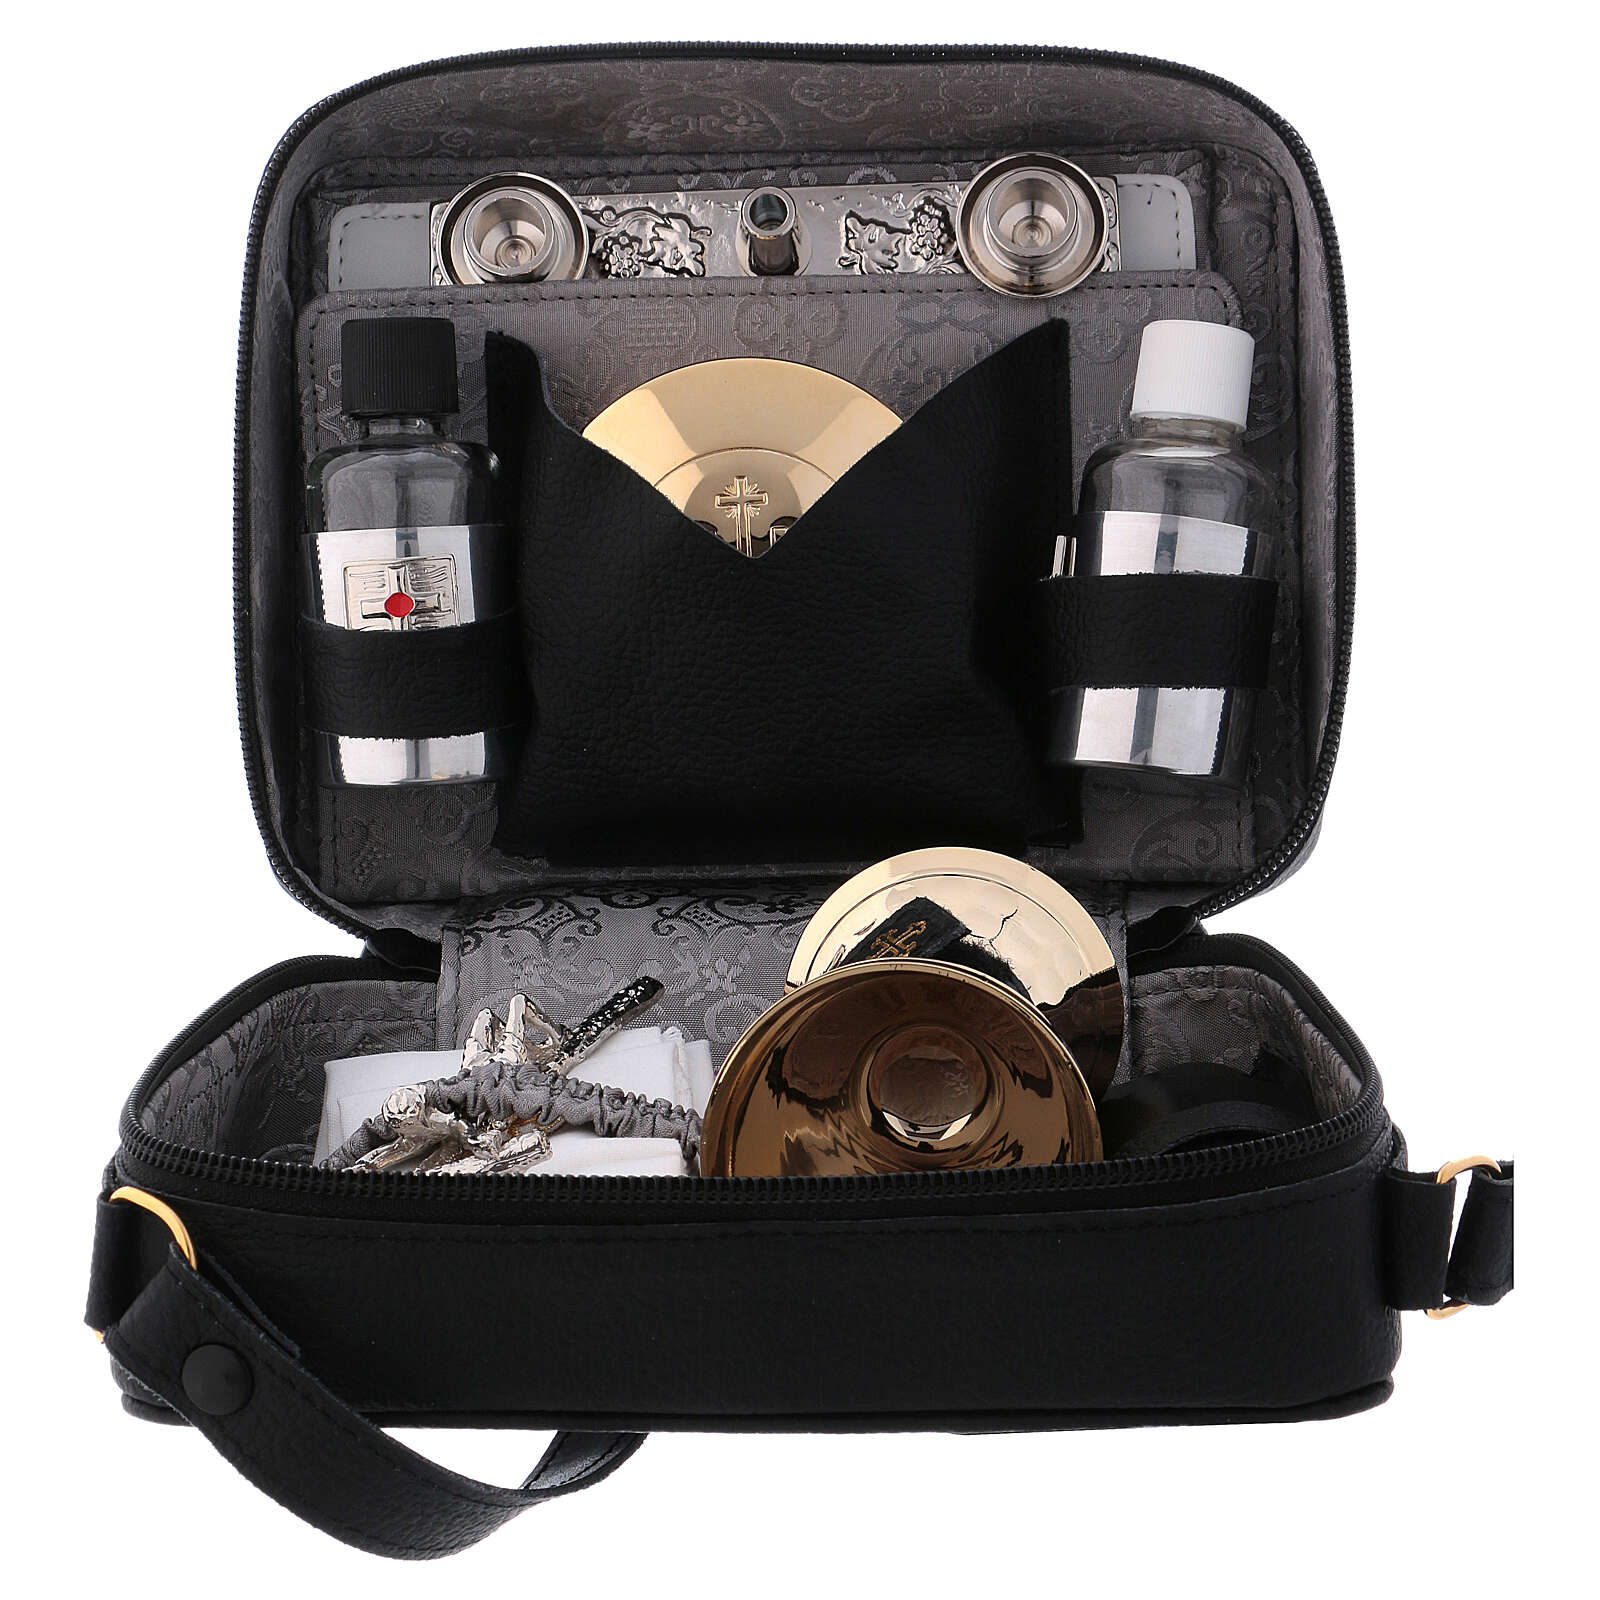 Mass kit with leather bag, lined with grey fabric 3